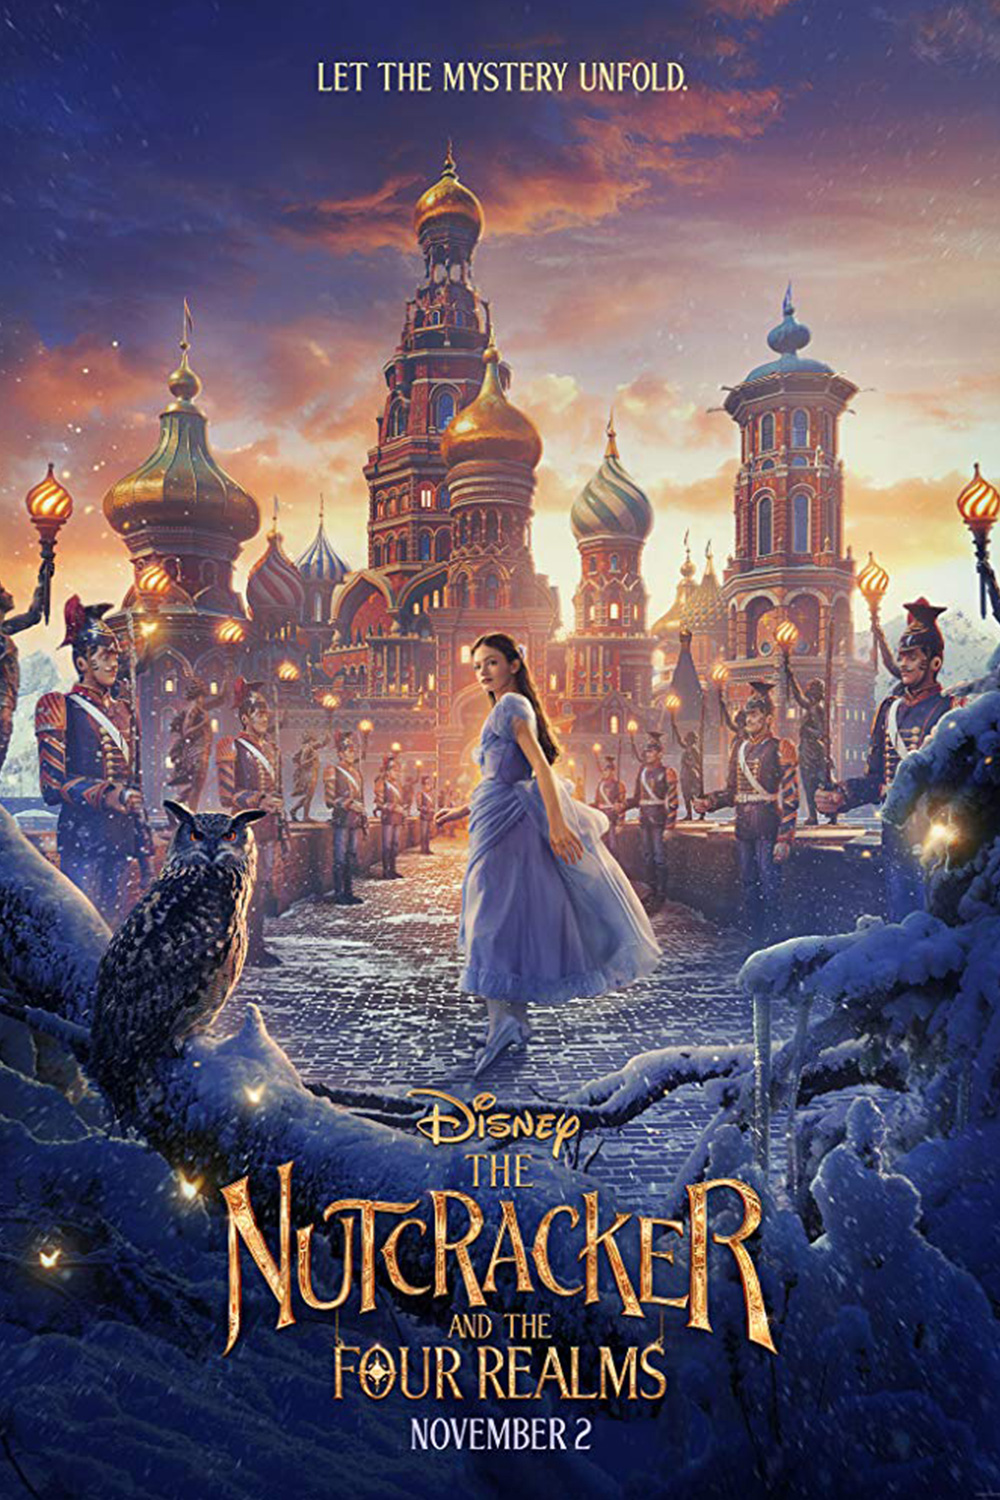 NUTCRACKER FOUR REALMS